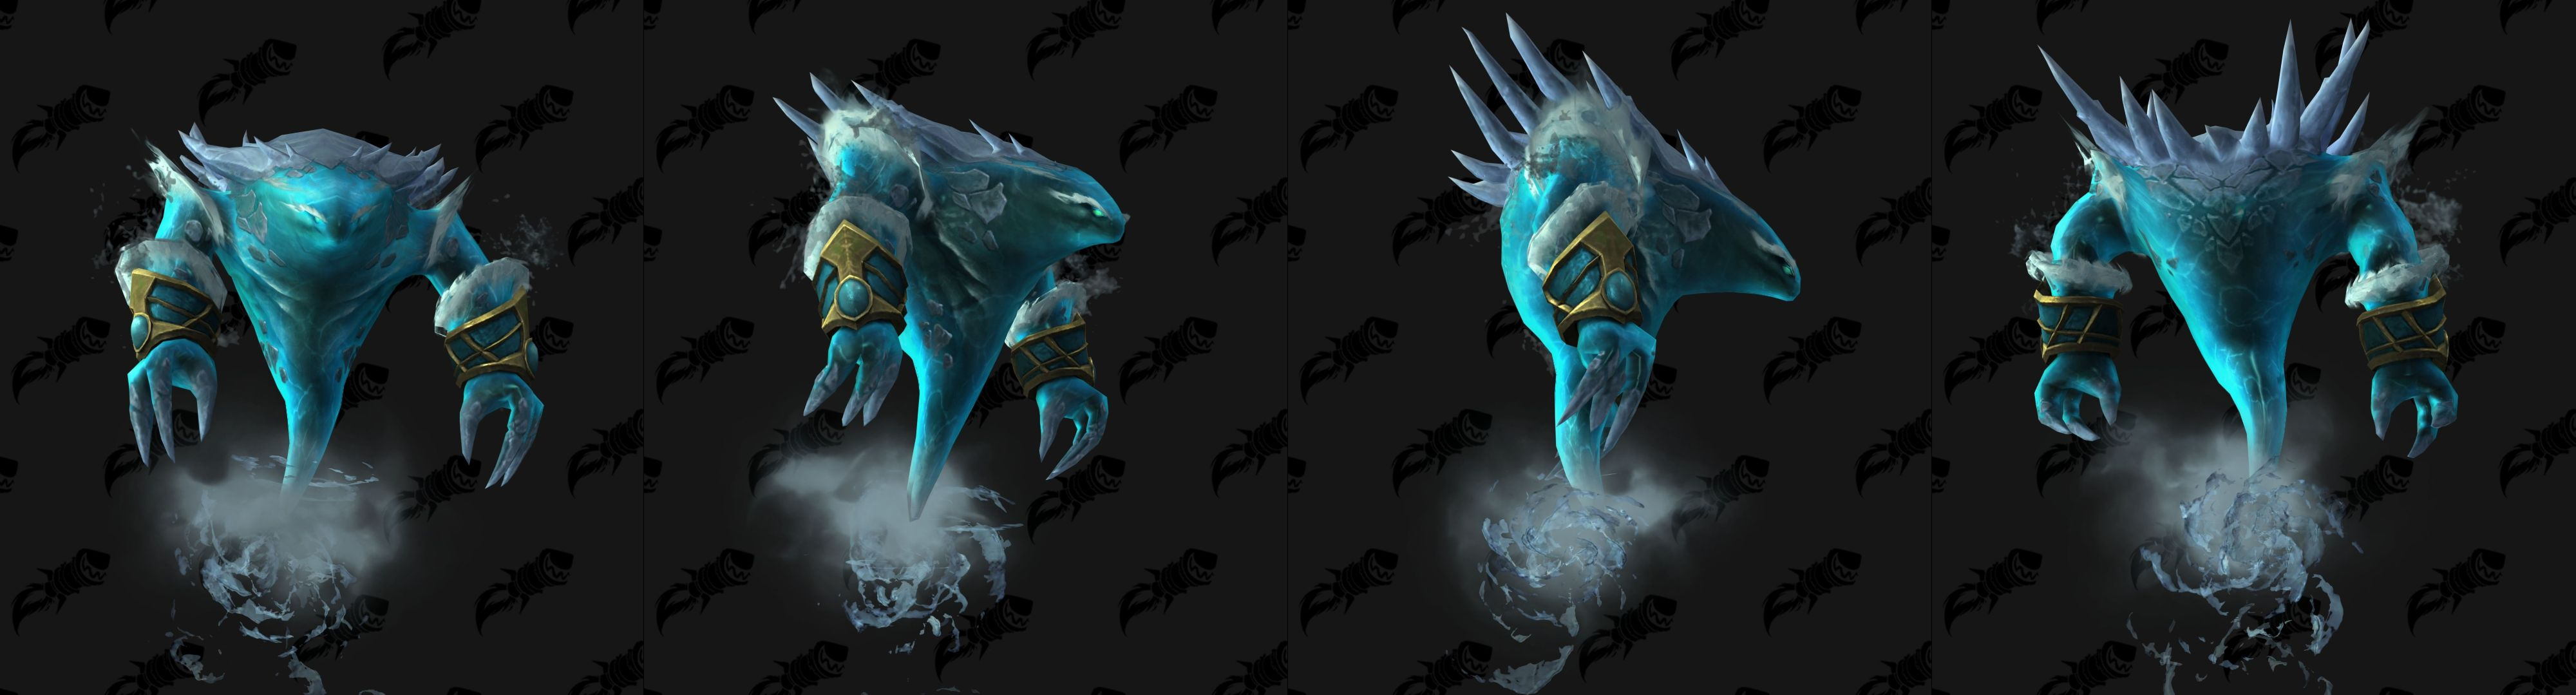 WoW Glacial Elemental Mount Jaina